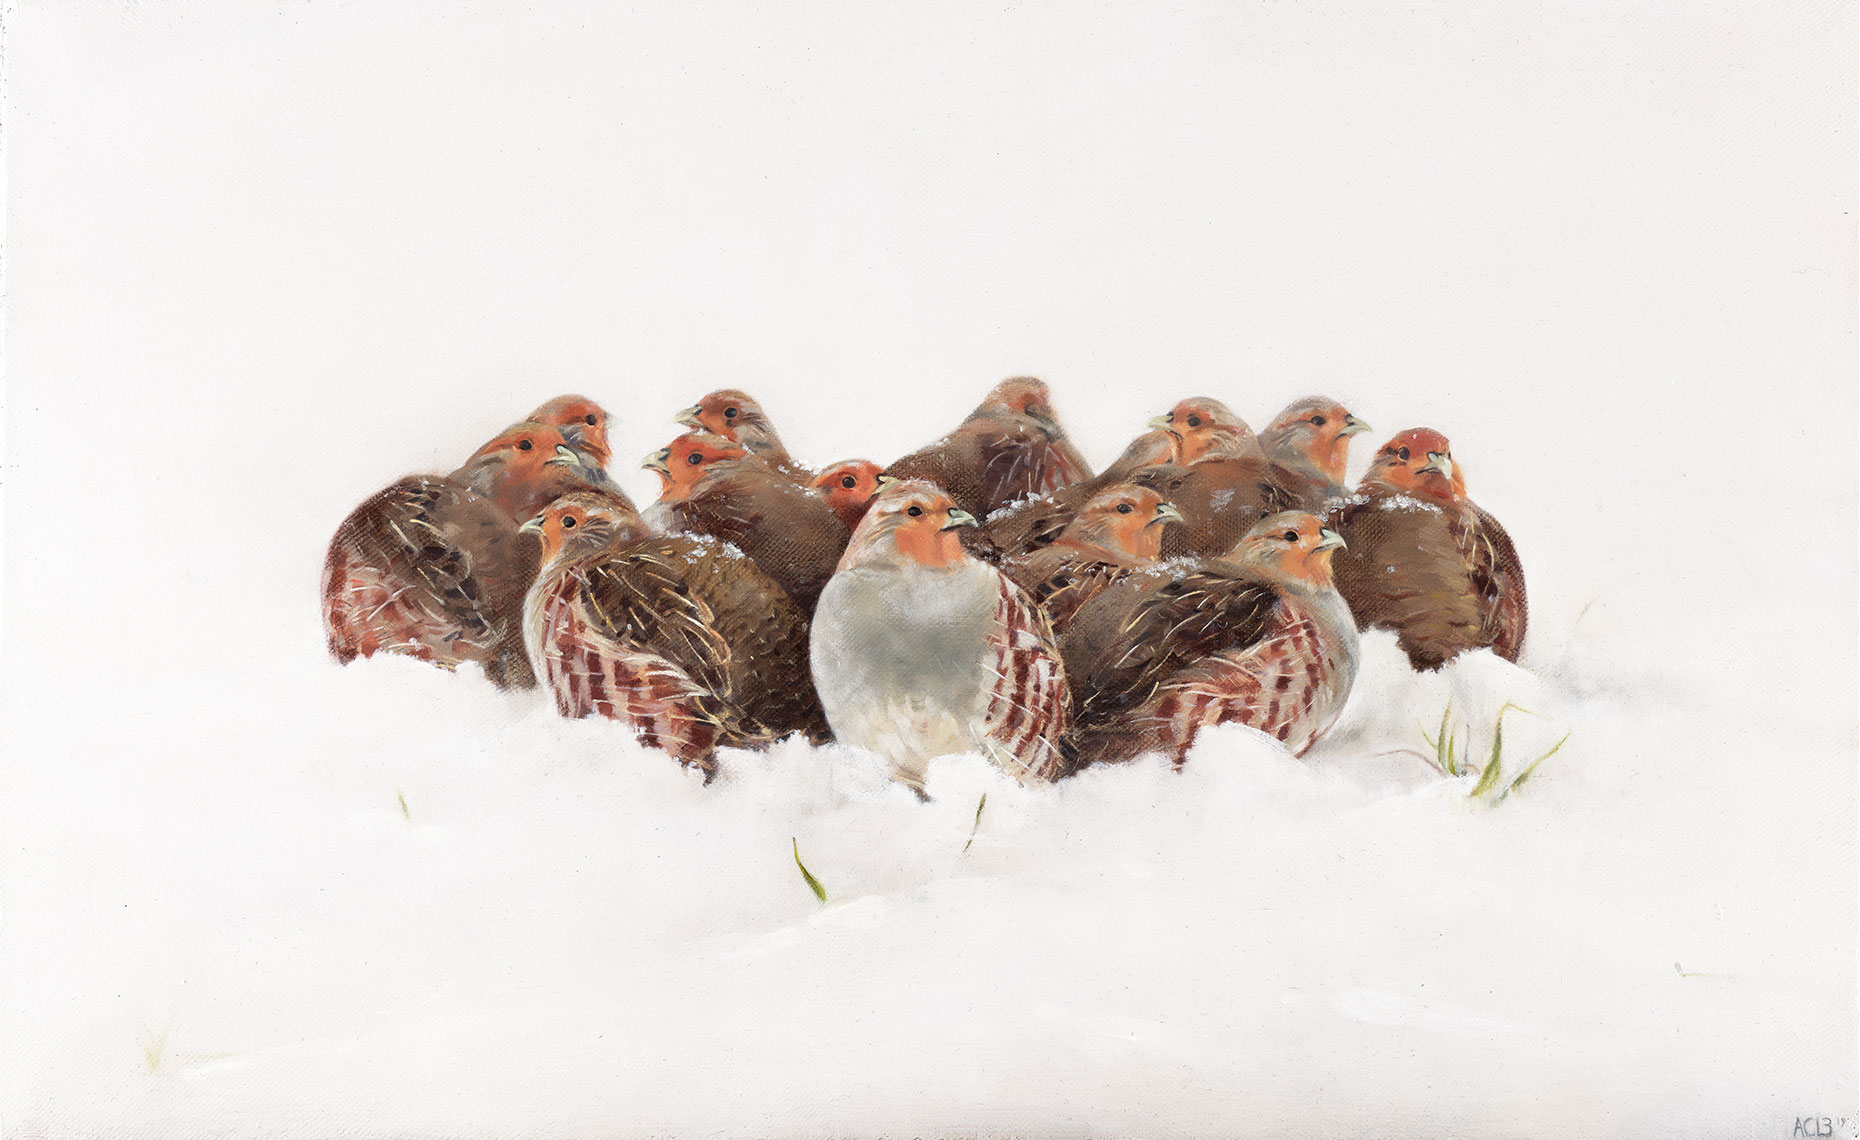 Huddled Covey of Grey Partridge